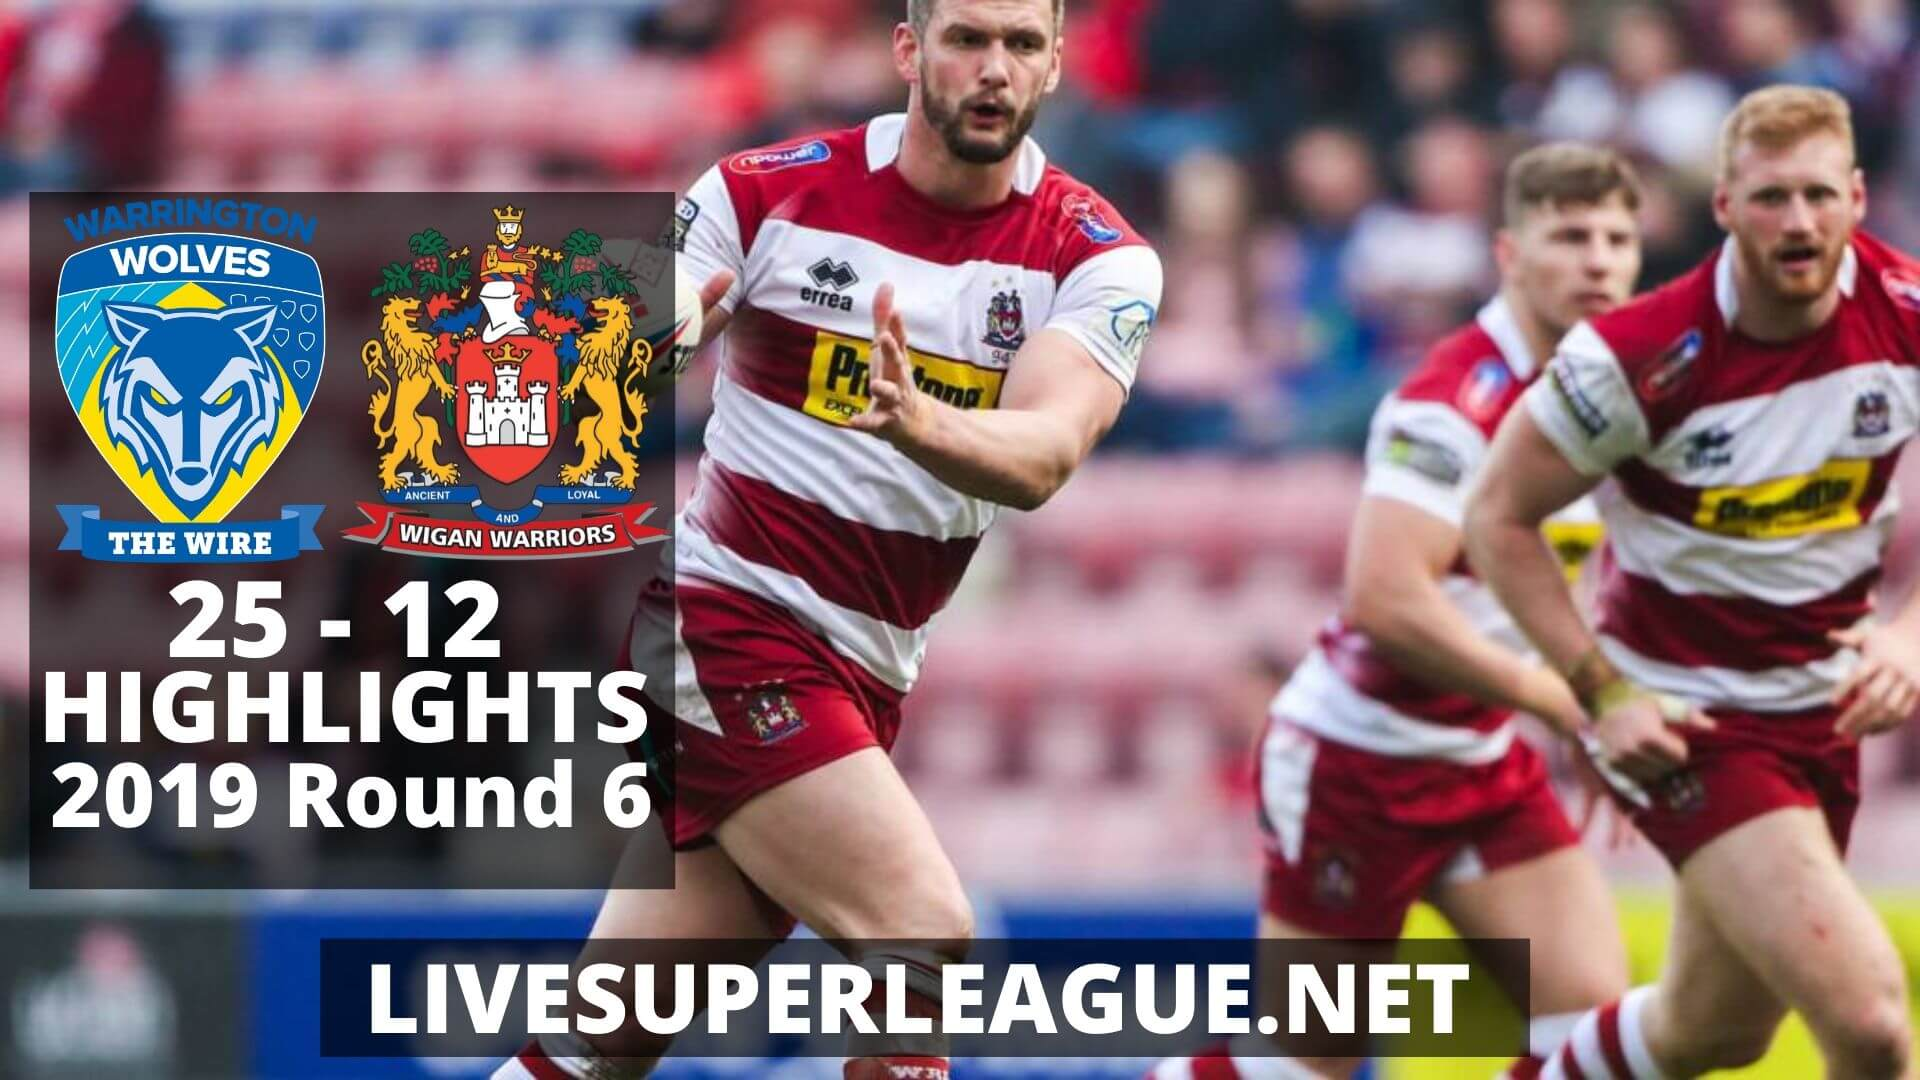 Warrington Wolves Vs Wigan Warriors Highlights 2019 Round 6